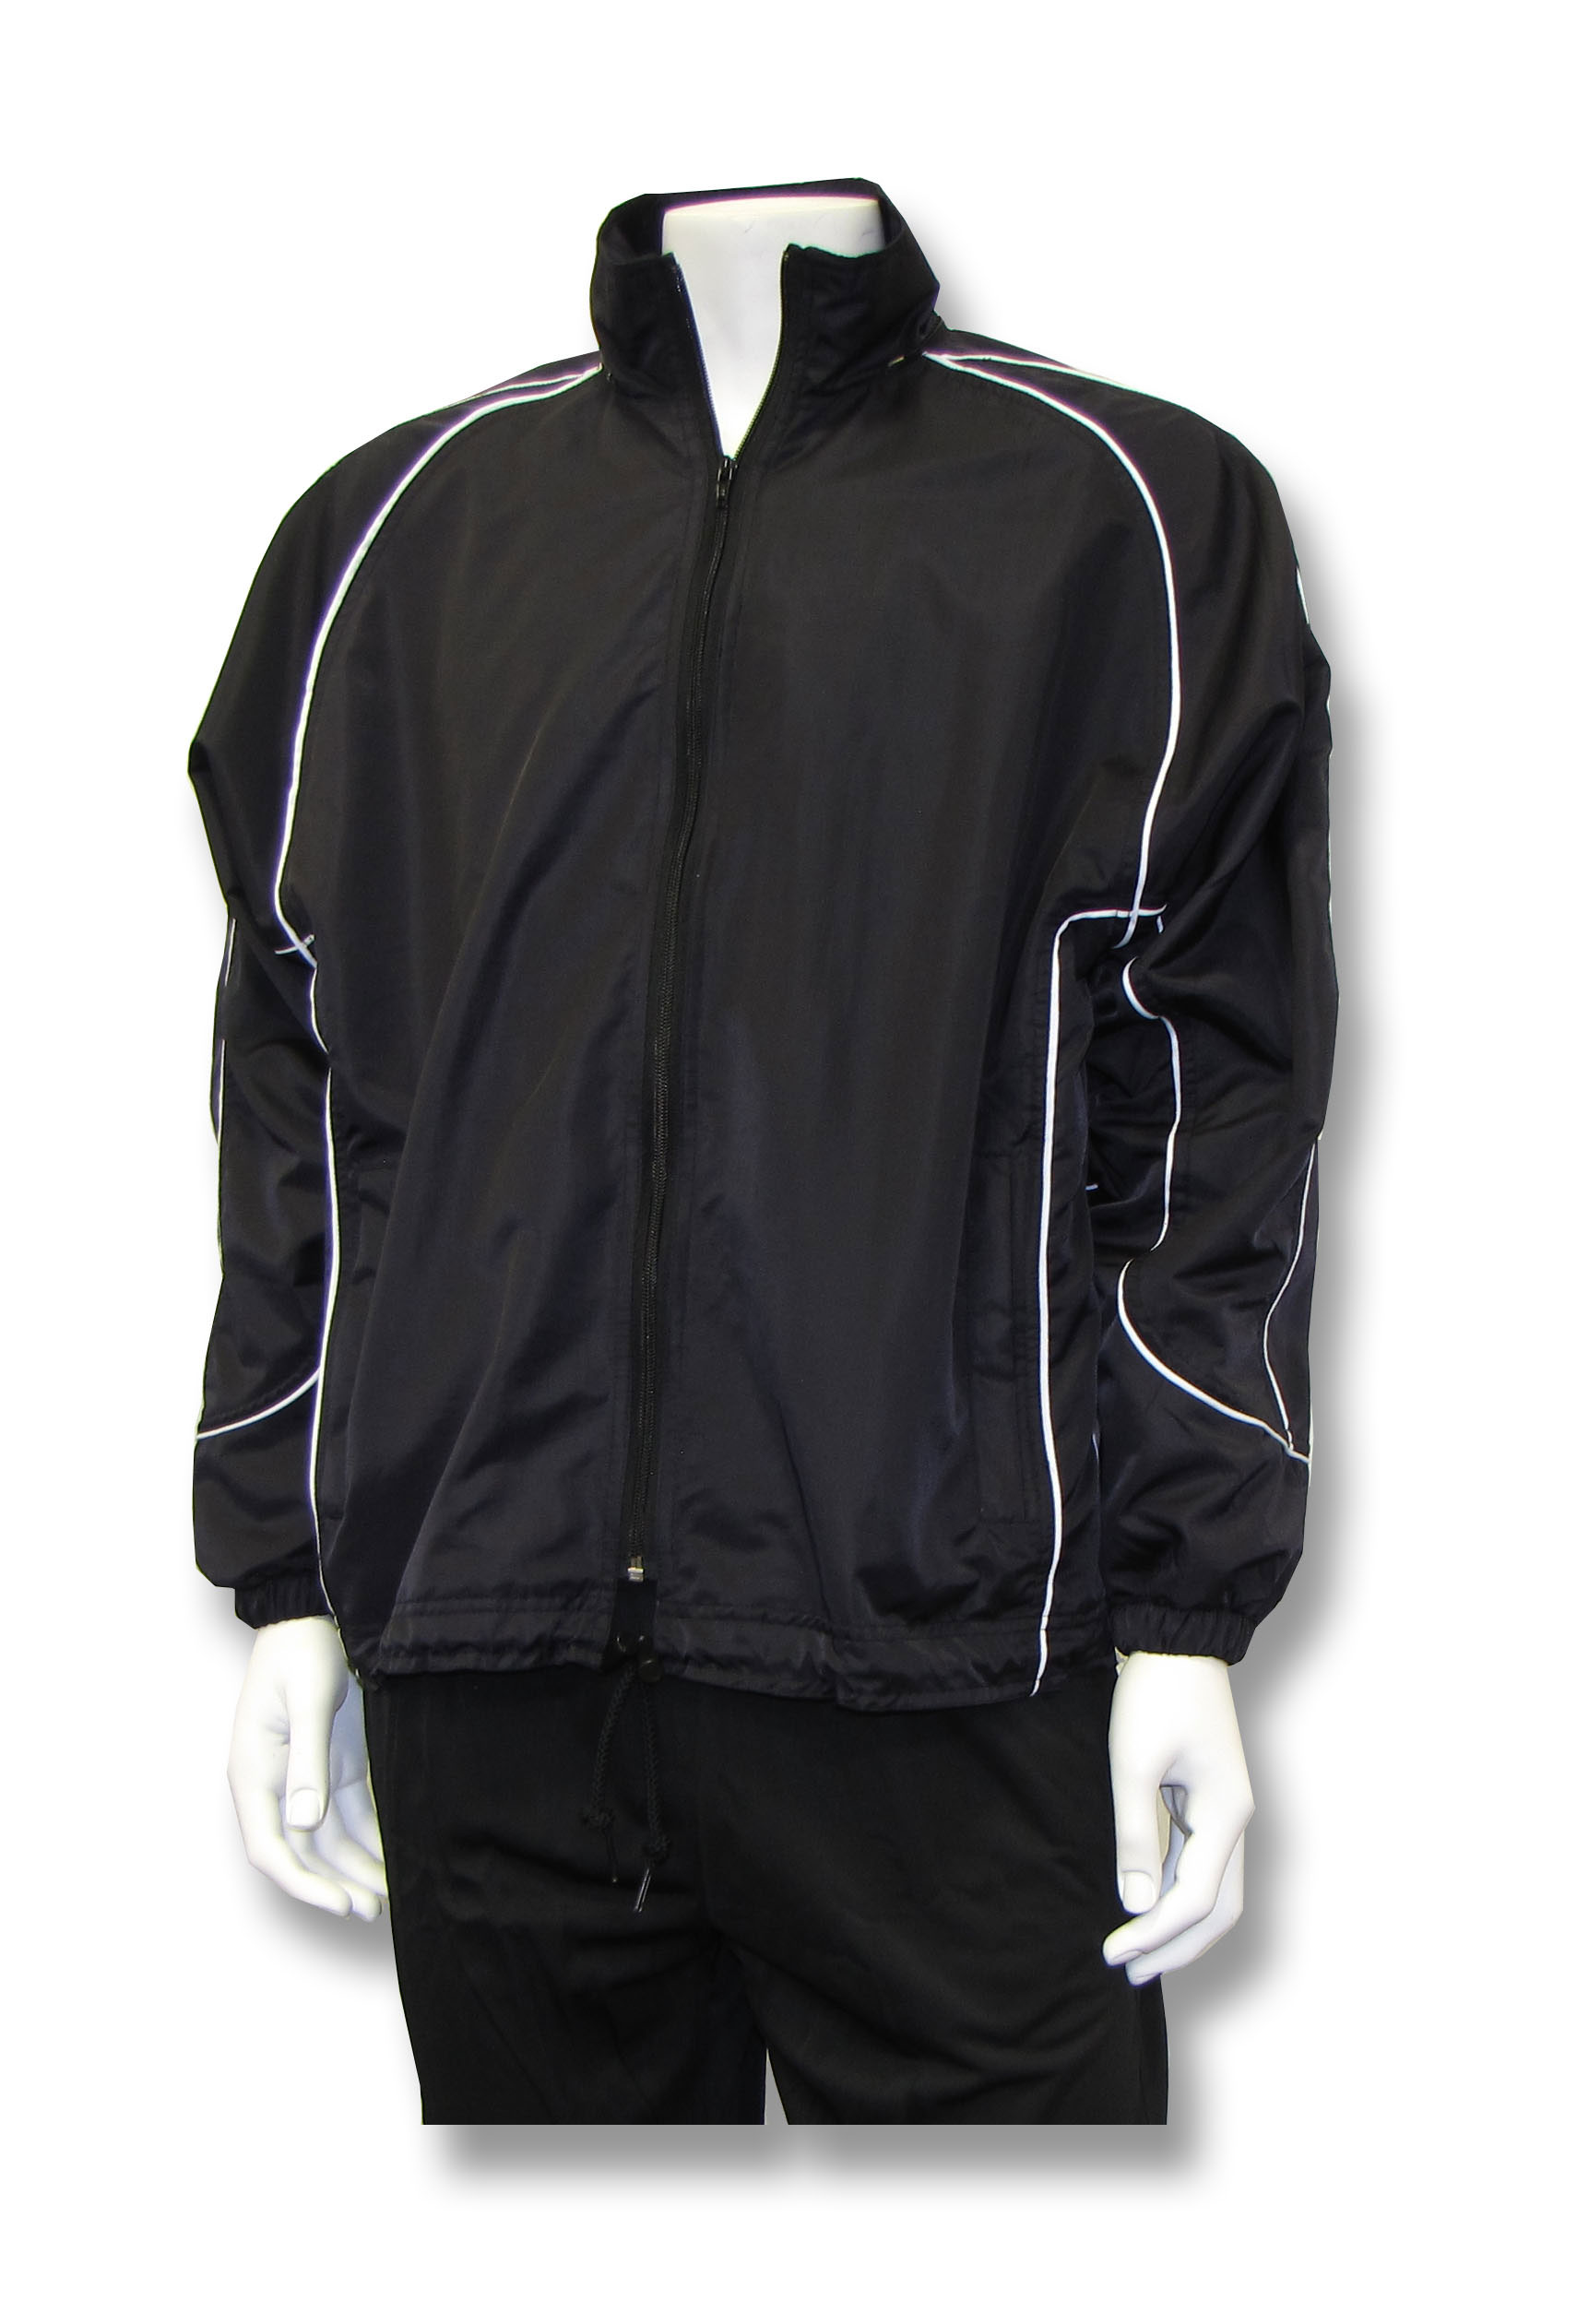 Viper soccer rain jacket in black by Code Four Athletics